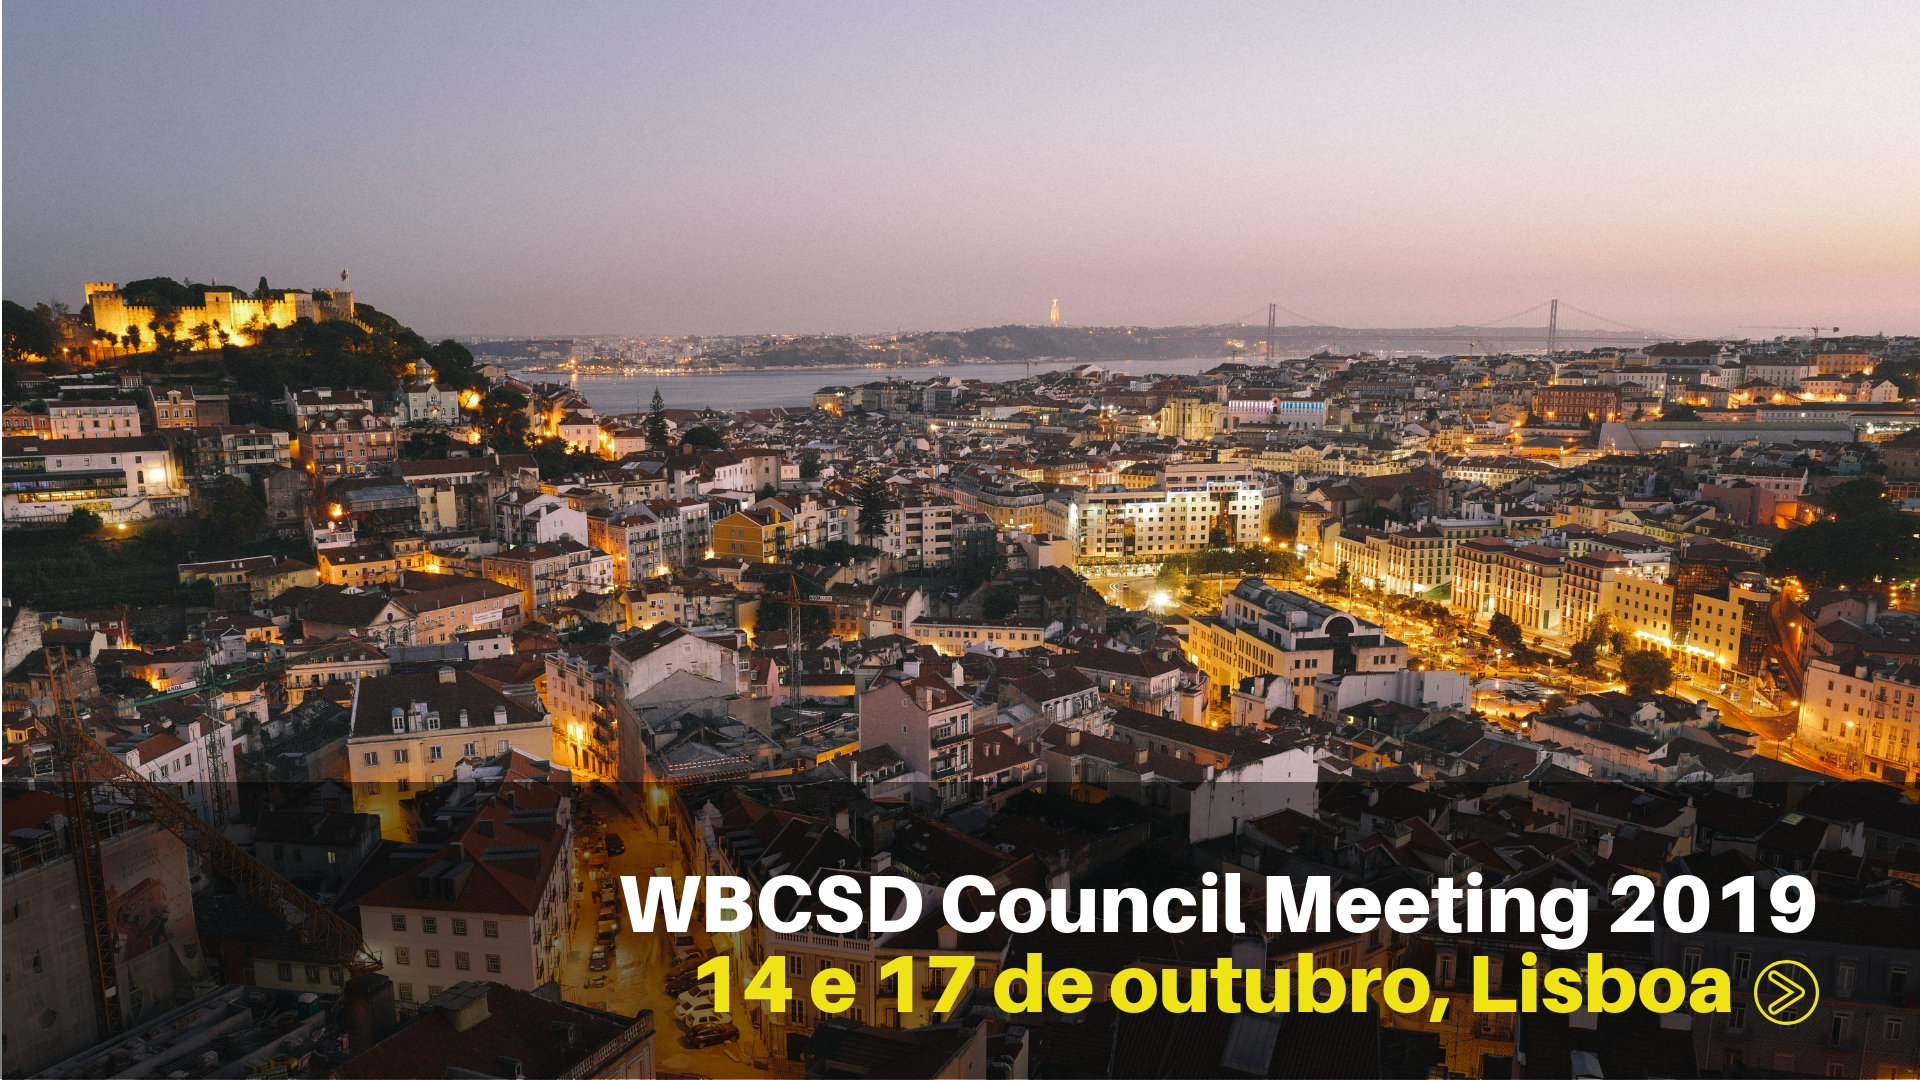 WBCSD Council Meeting 2019